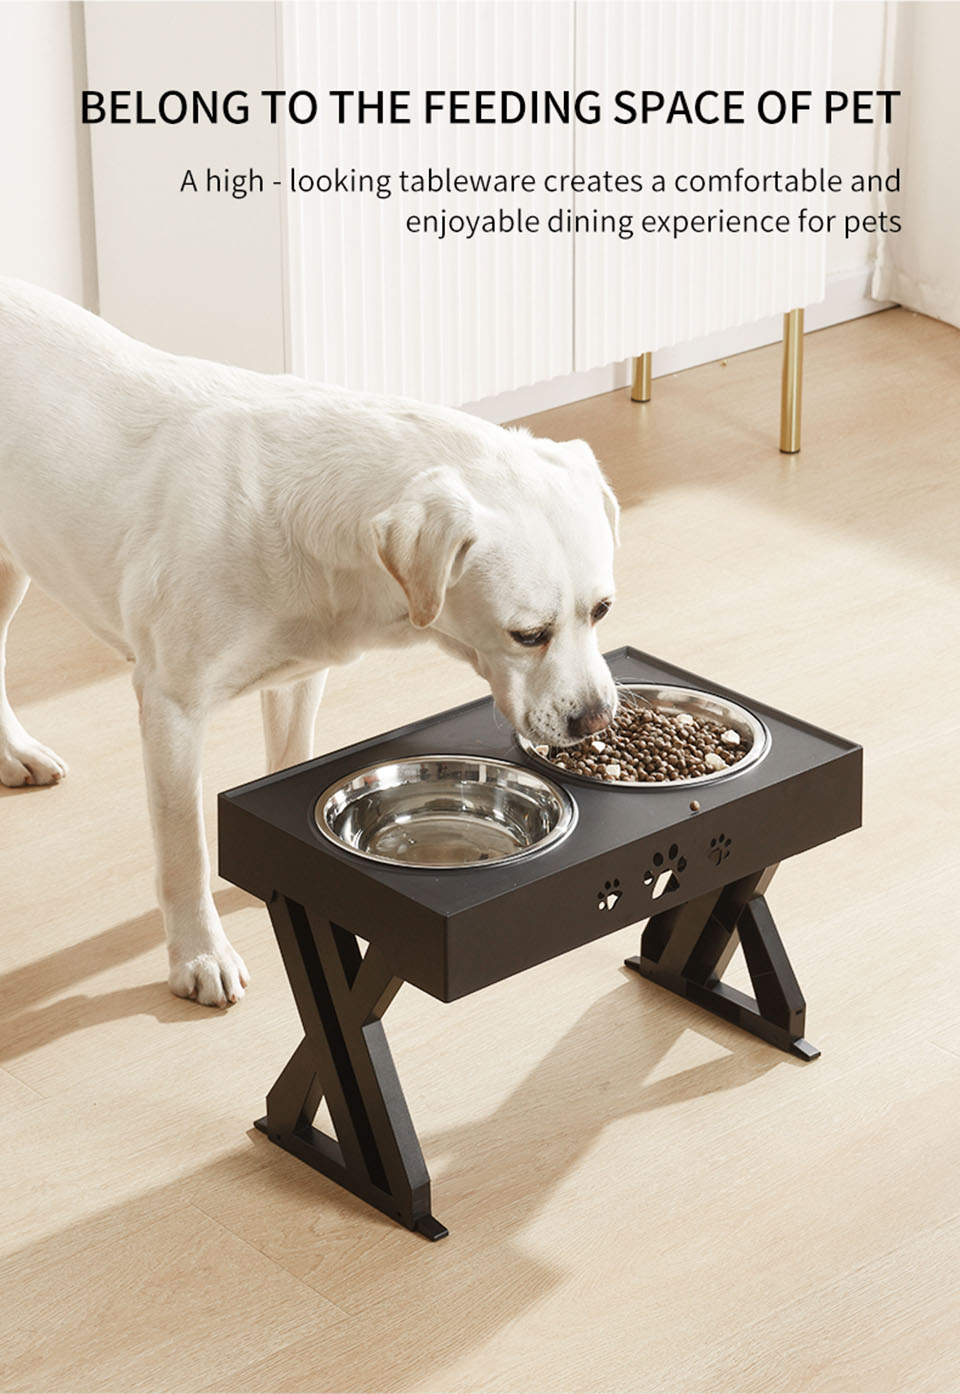 Dogs Double Non-Slip Bowl Adjustable Heights Pet Cat Food